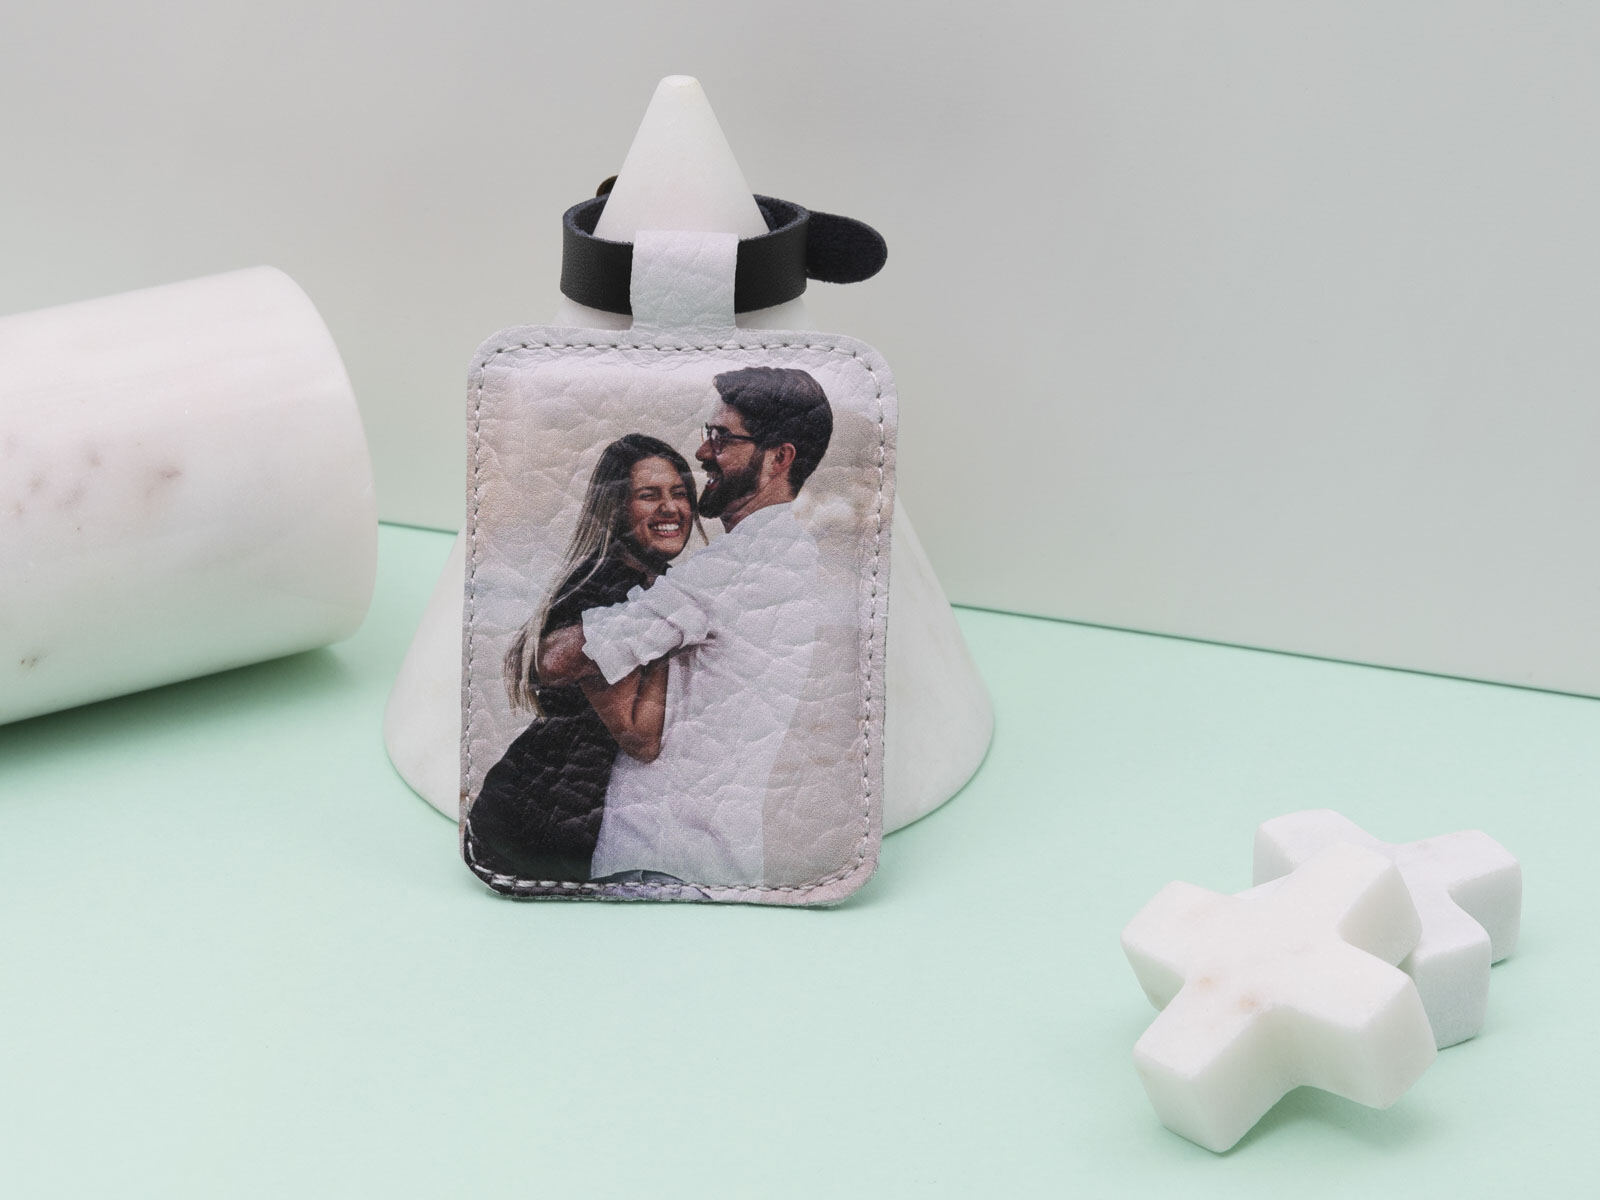 Personalised Gifts for the Bride